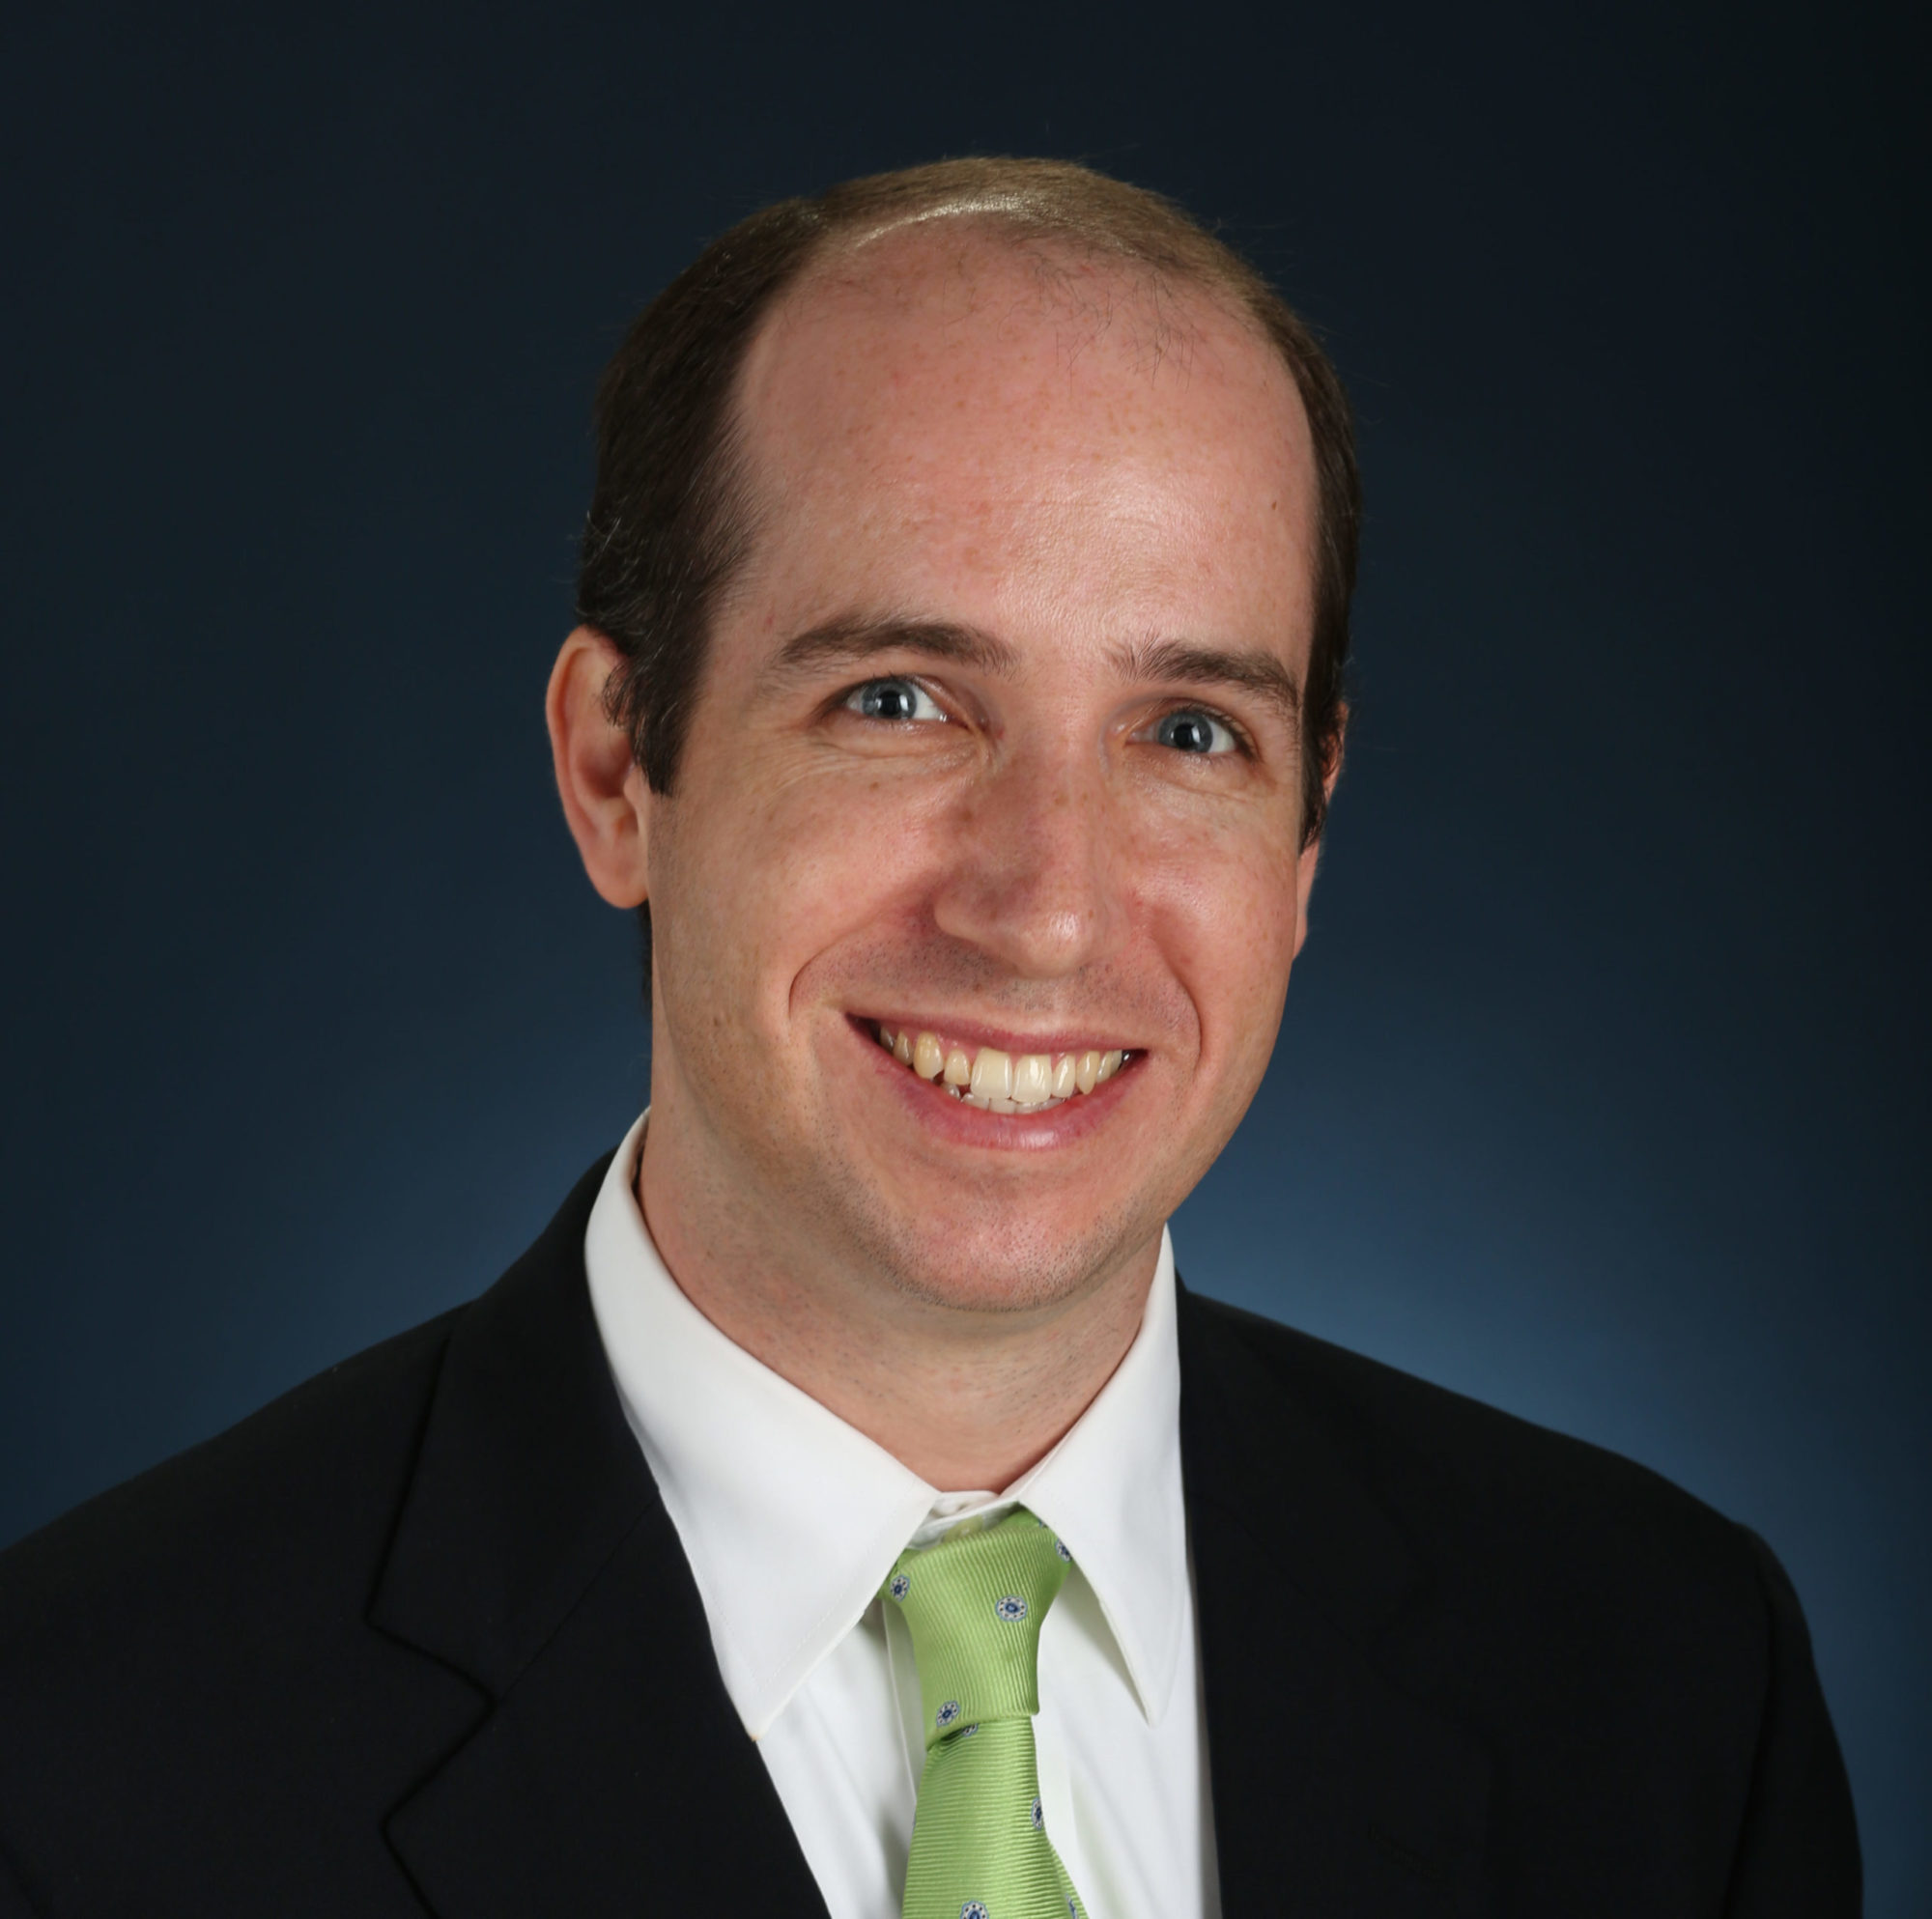 Consulting Cardiologists: Kevin R. Dougherty, MD, FACC